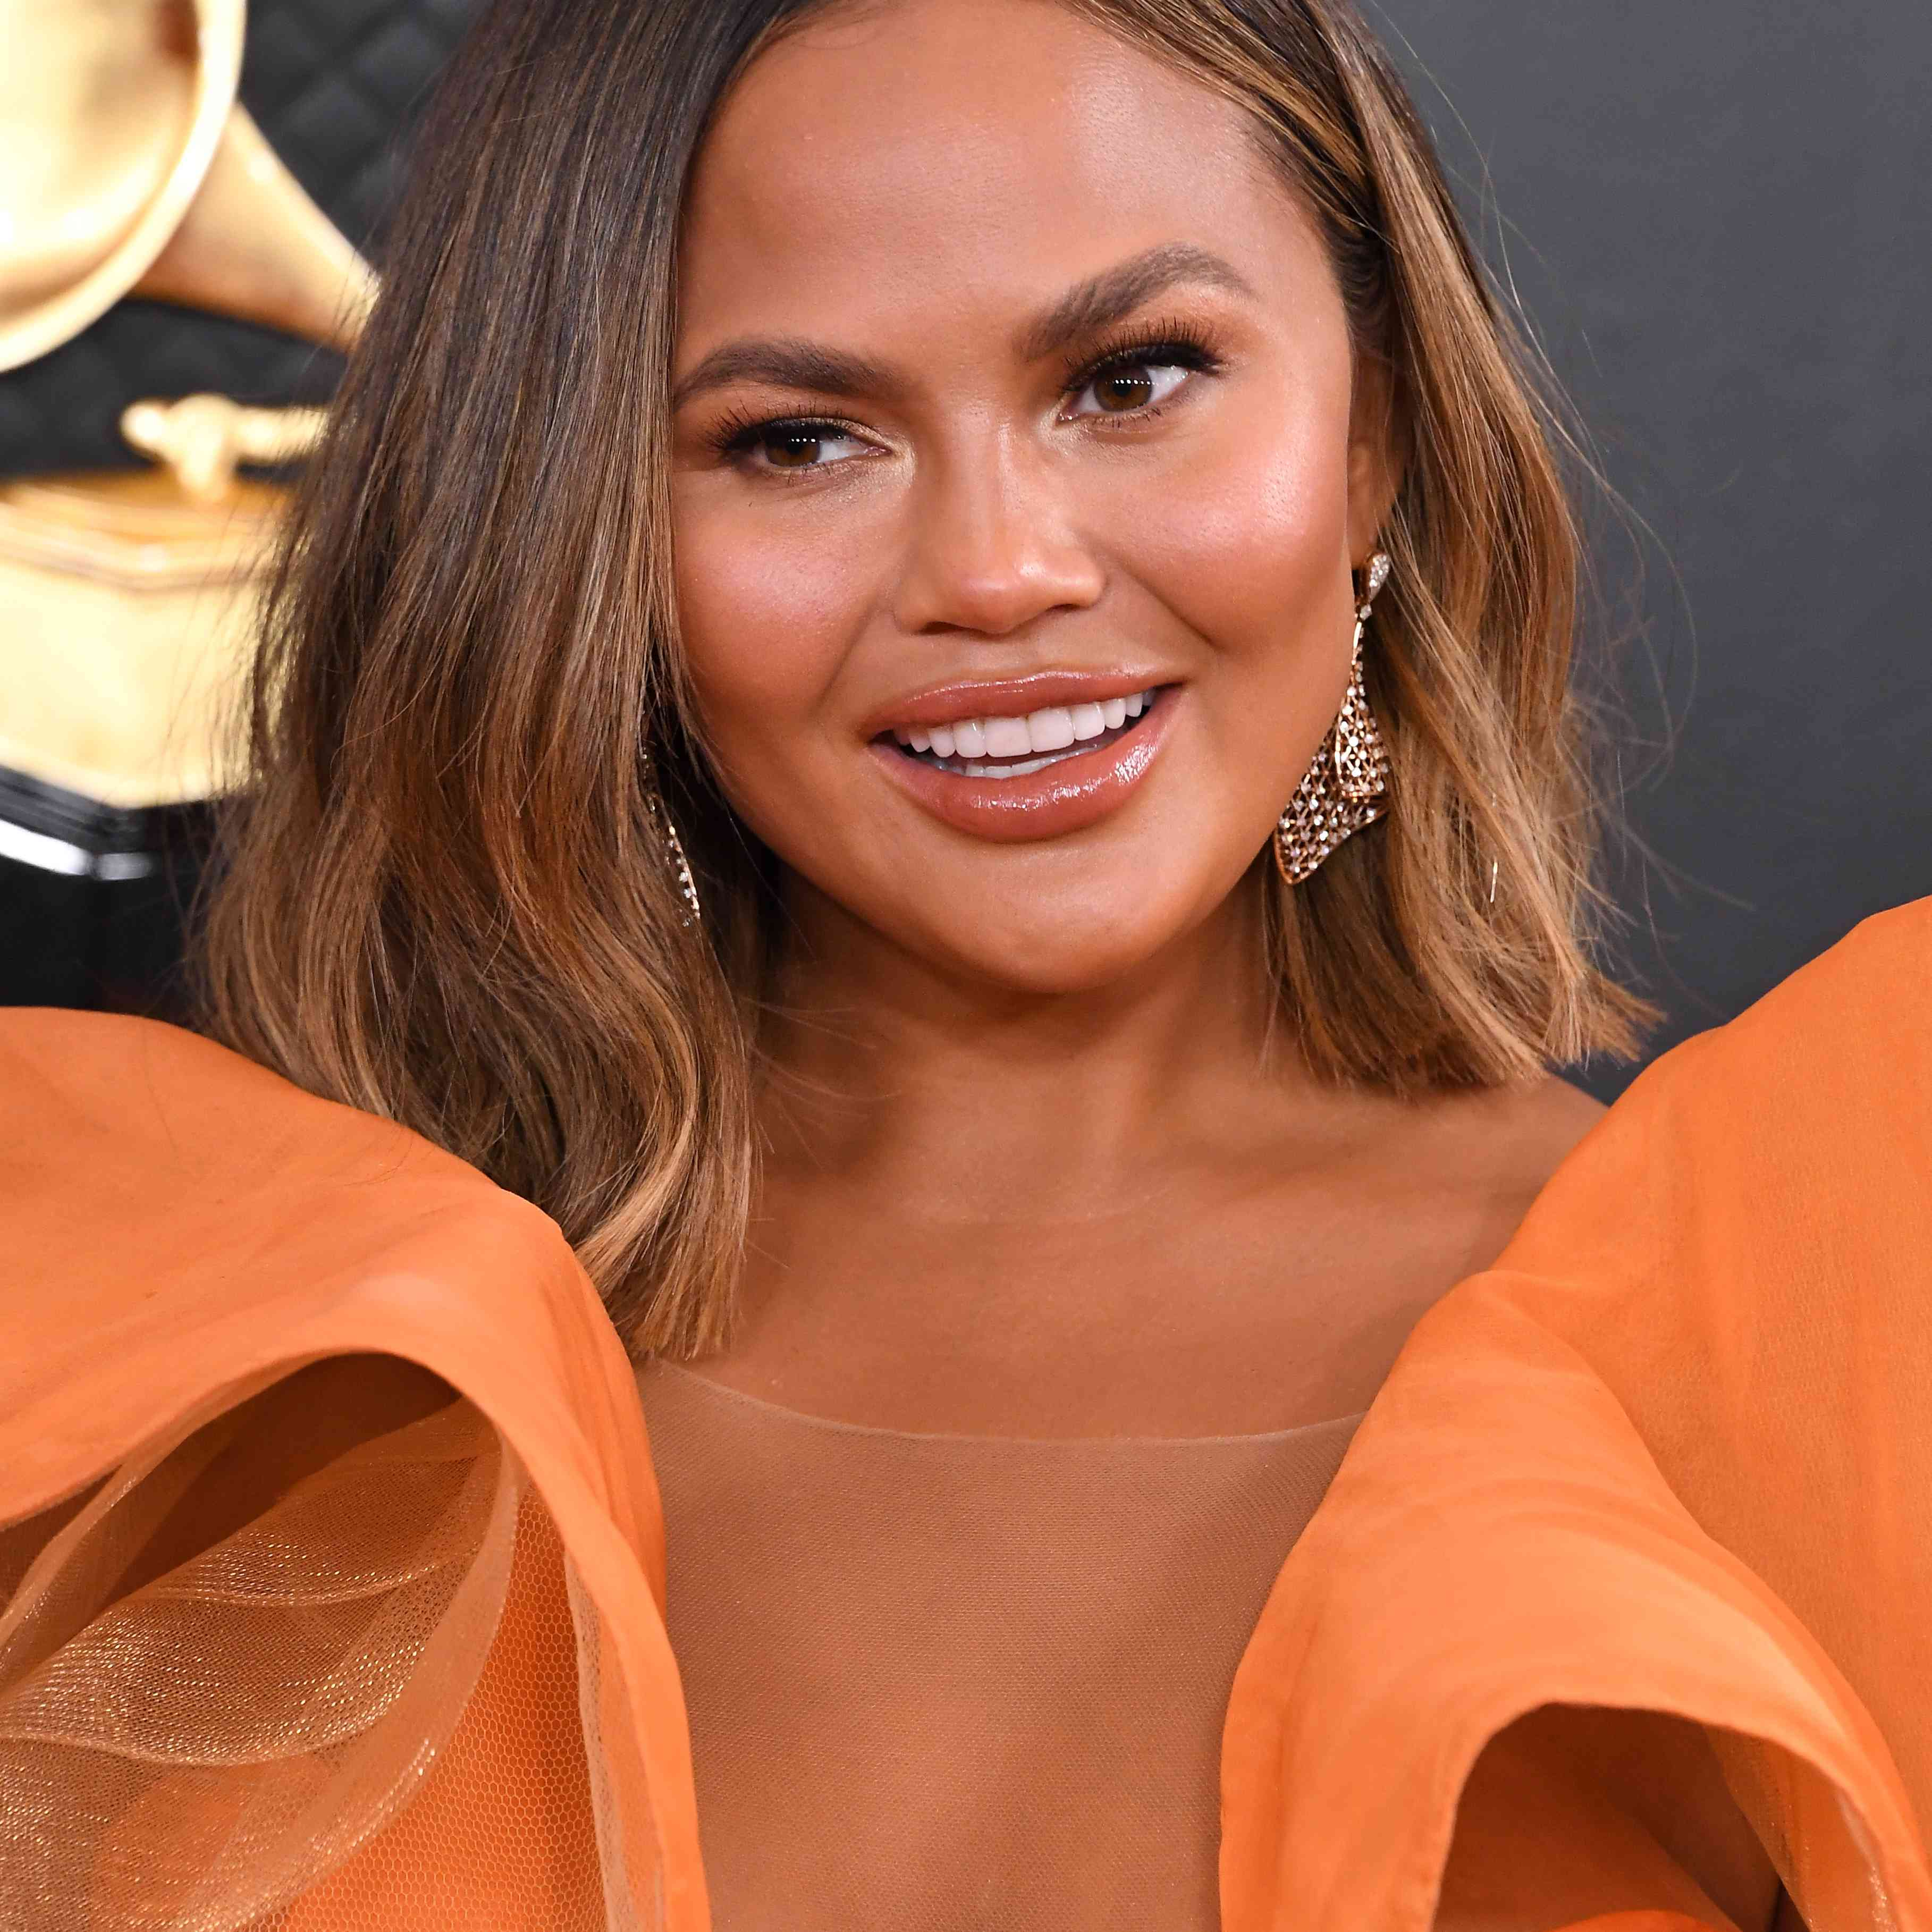 Chrissy Teigen with orange top and dangly earrings